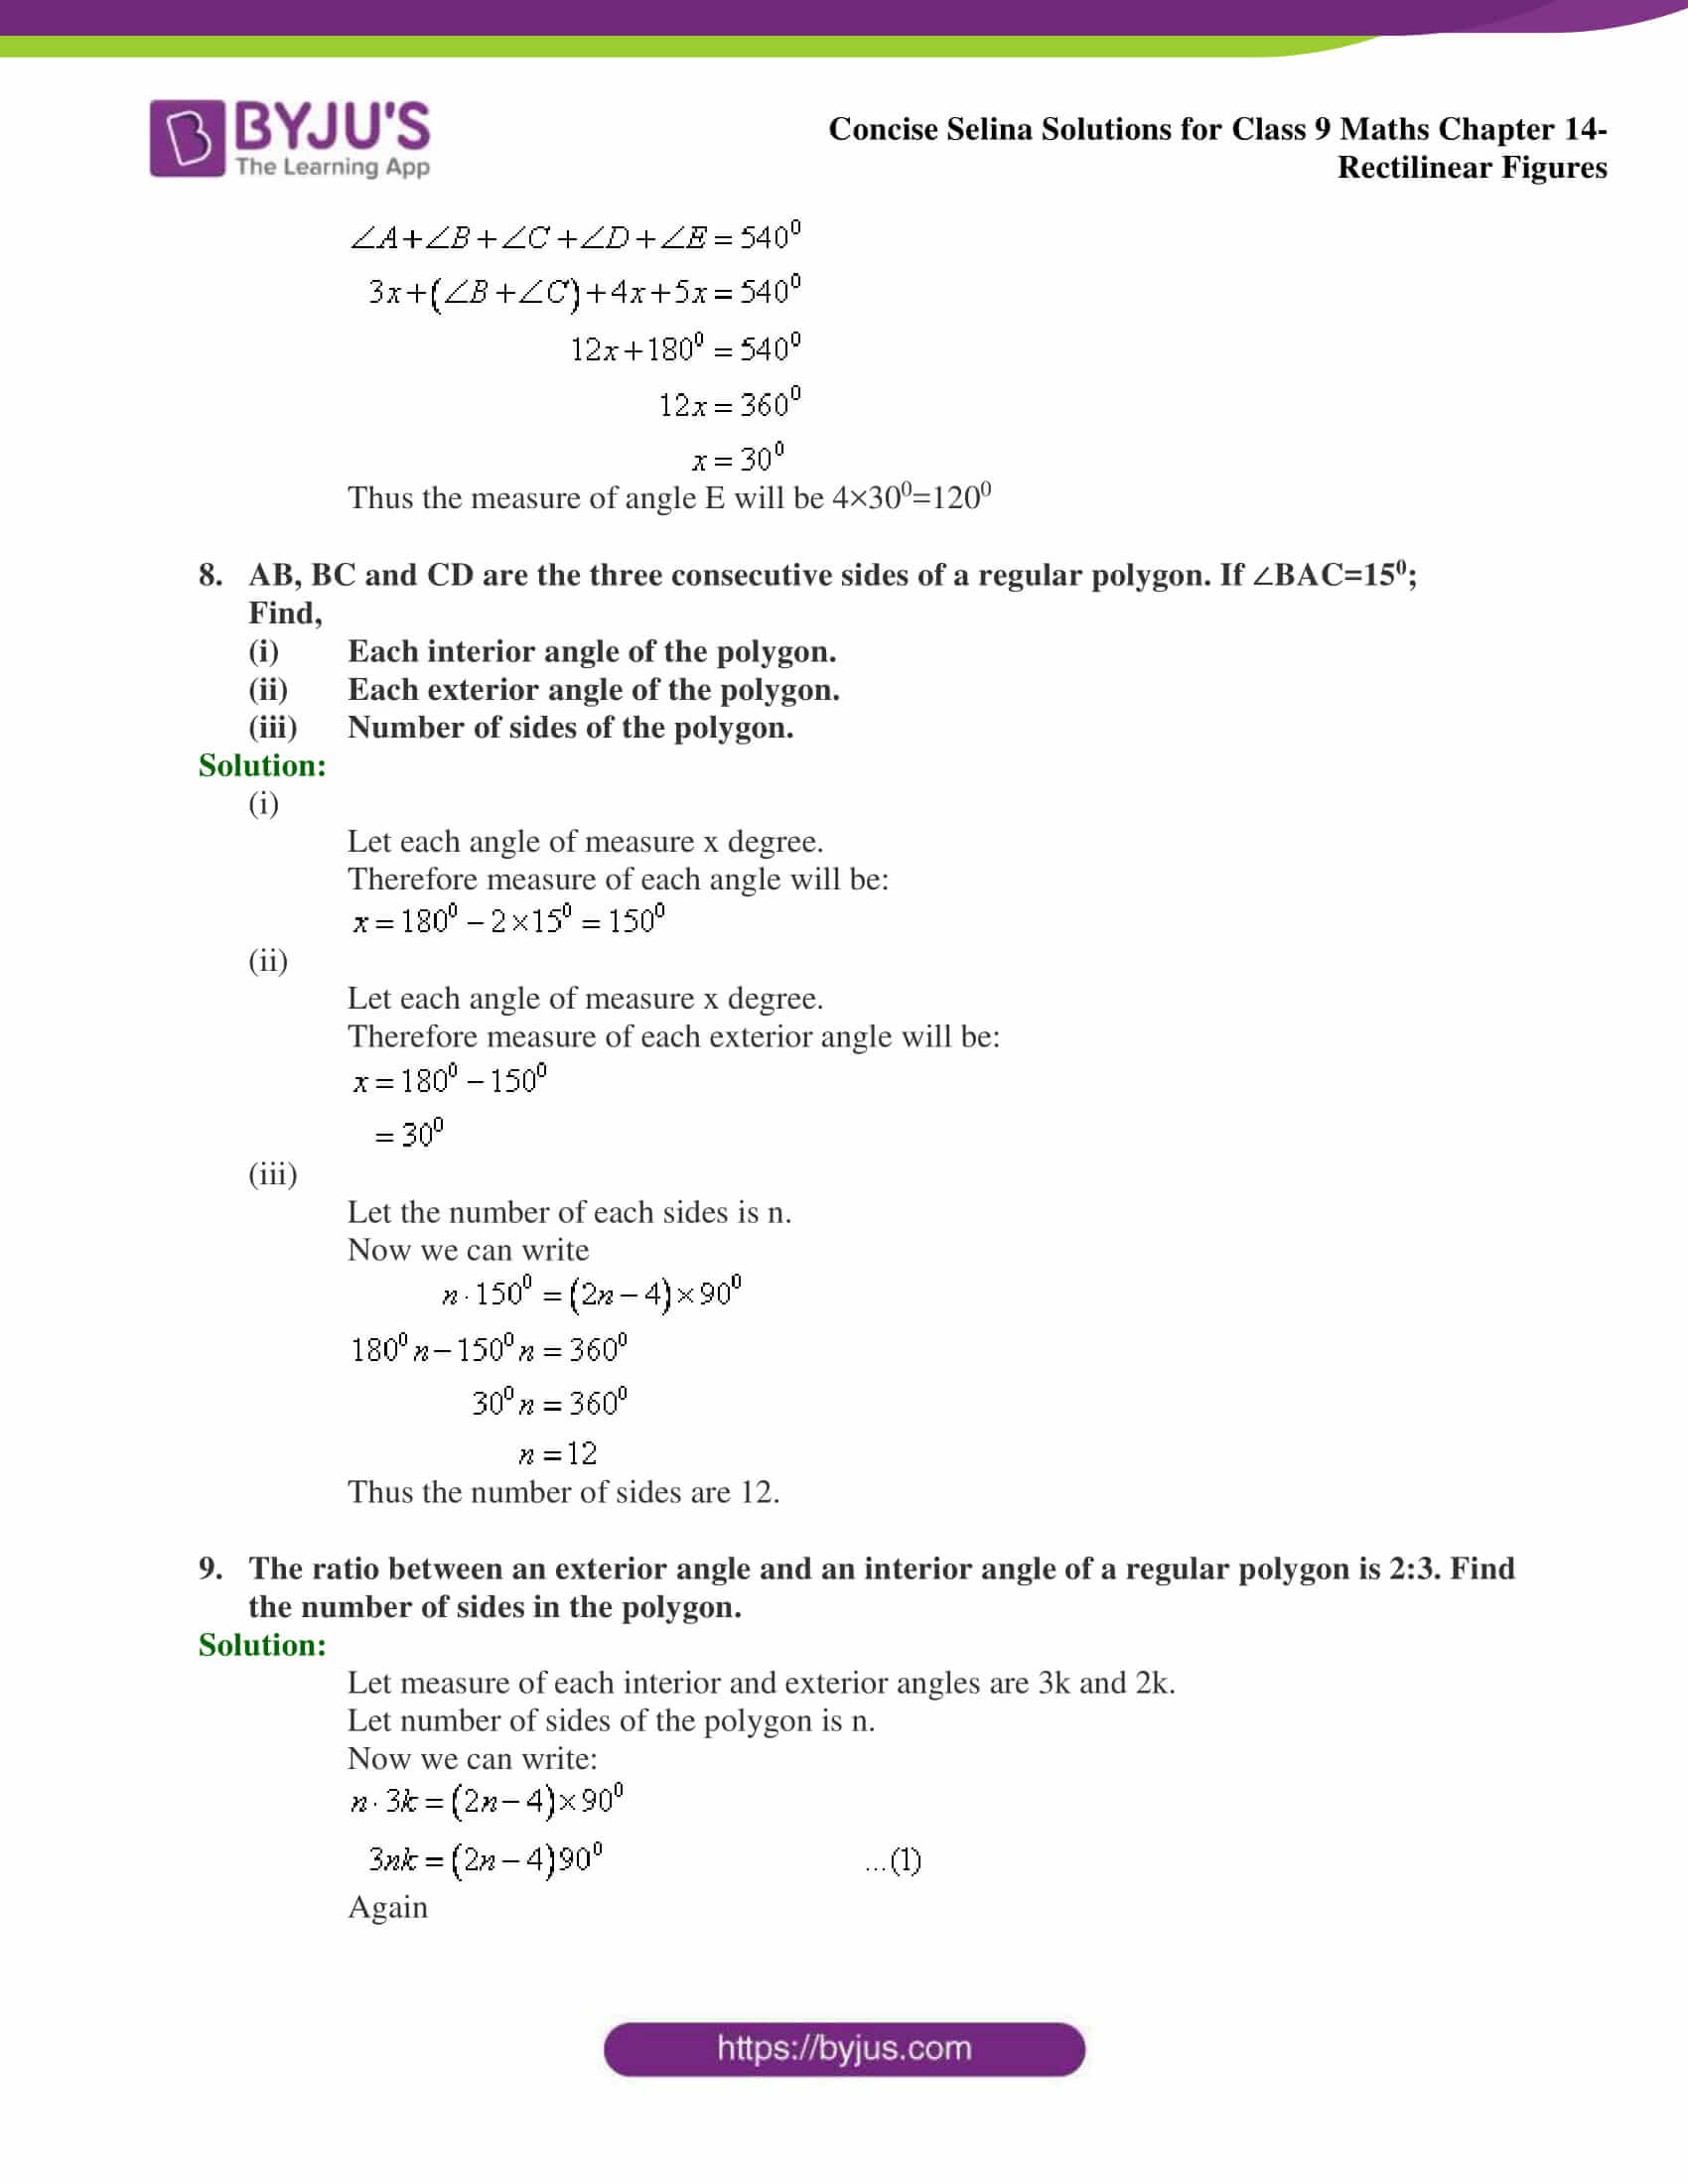 selina Solutions for Class 9 Maths Chapter 14 part 03